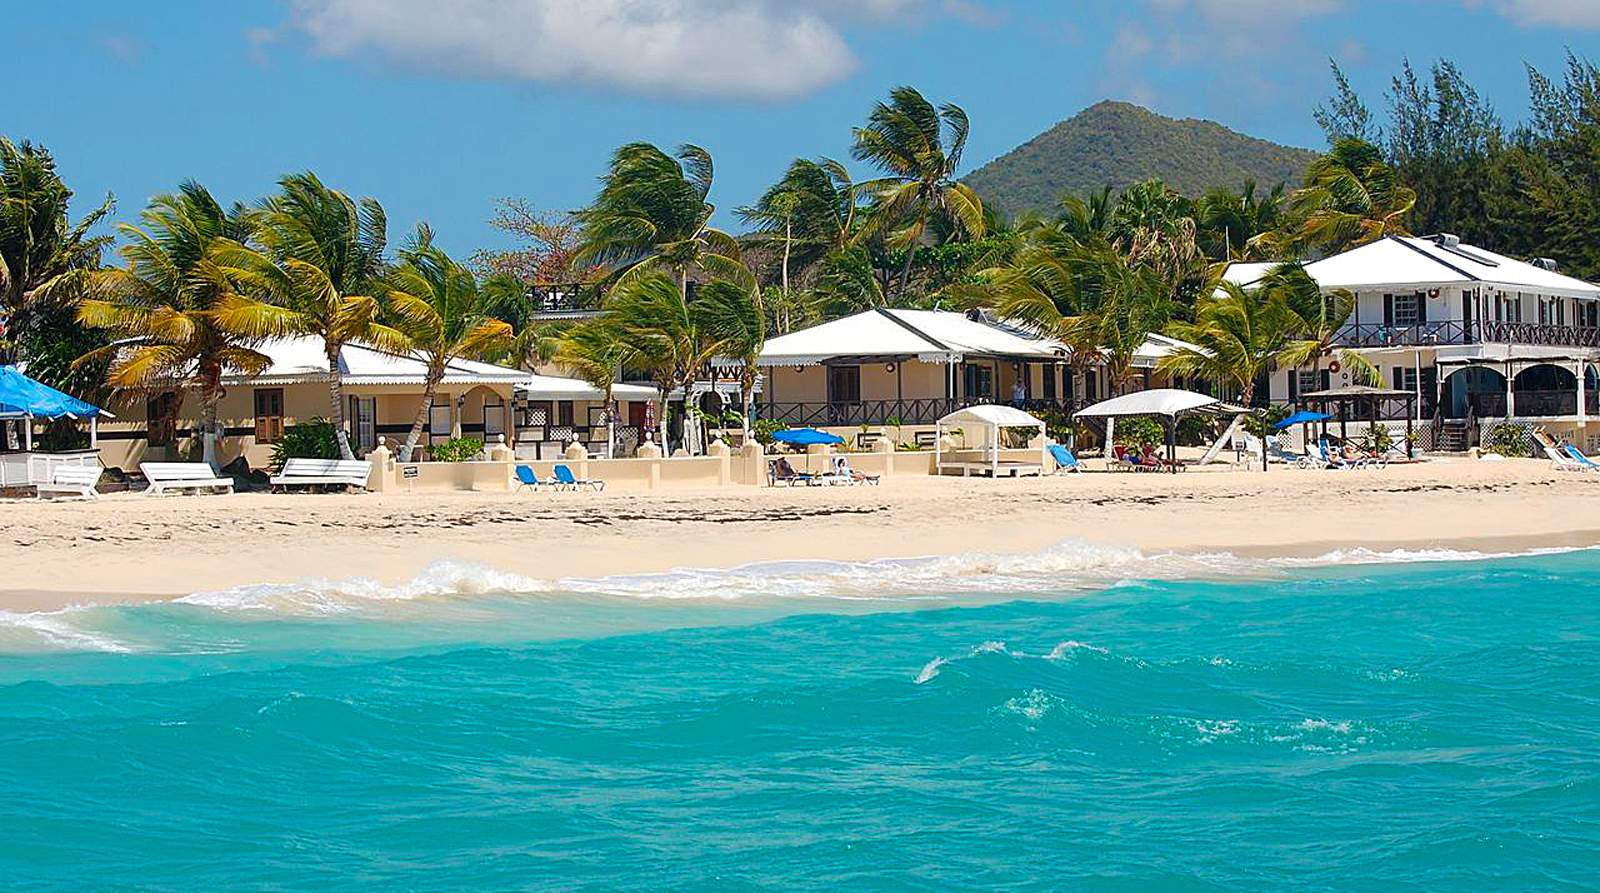 mary's boon hotel located in simpson bay – st maartenwelcome to